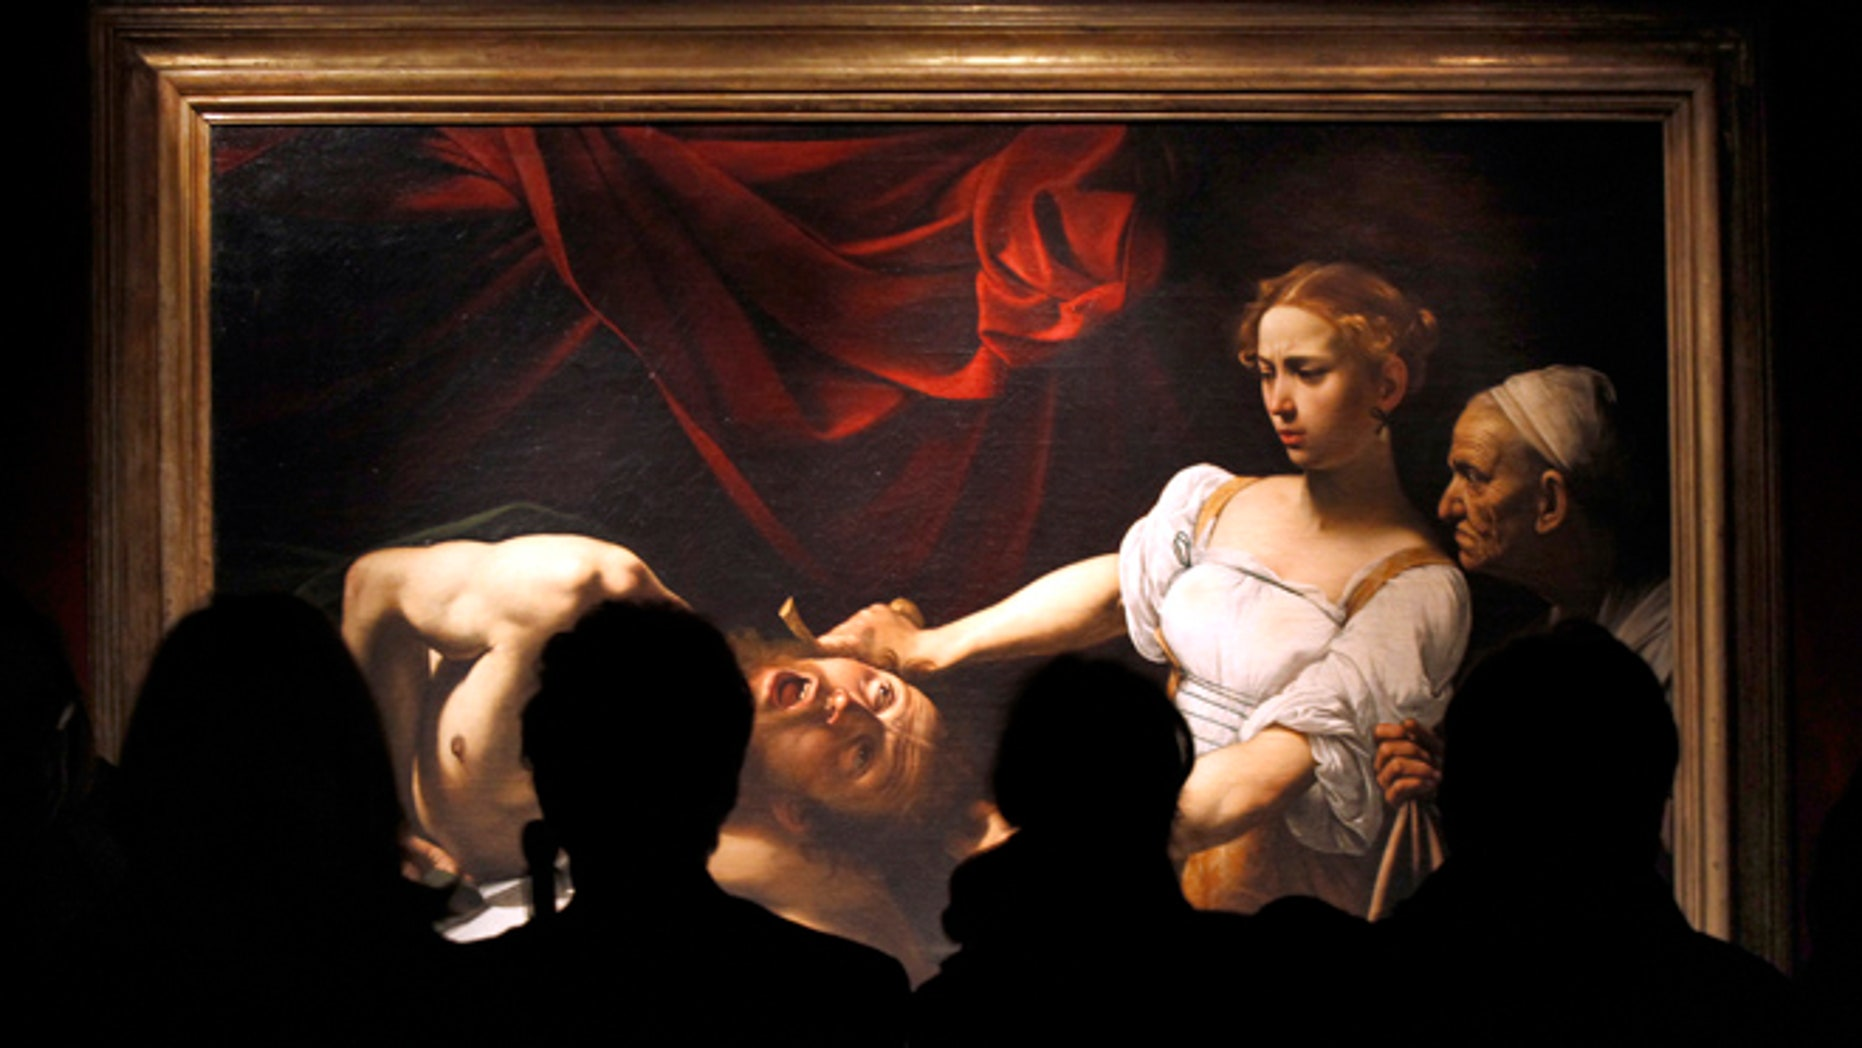 """FILE 2010: Visitors stand near Caravaggio's """"Judith Beheading Holofernes"""" painting during an exhibition to celebrate the Baroque master on the 400th anniversary of his death at the Scuderie del Quirinale building in Rome."""